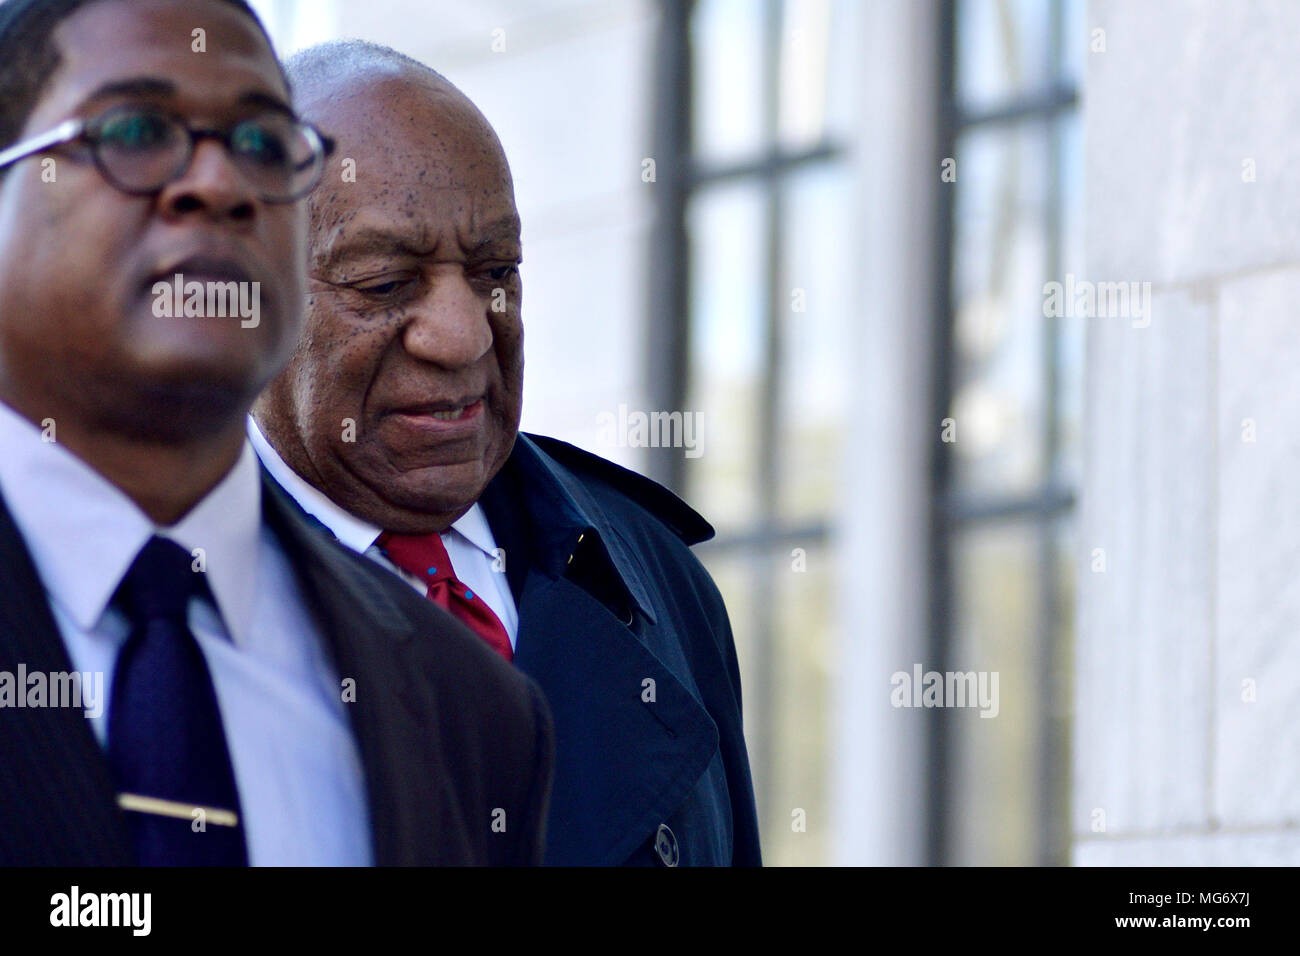 Norristown, USA. 26th Apr, 2018. Bill Cosby, actor, comedian and entertainer arrives for day 14 of the sexual assault trail at Montgomery County Court House in Norristown, PA, USA, on April 26, 2018. Credit: Bastiaan Slabbers/Alamy Live News - Stock Image